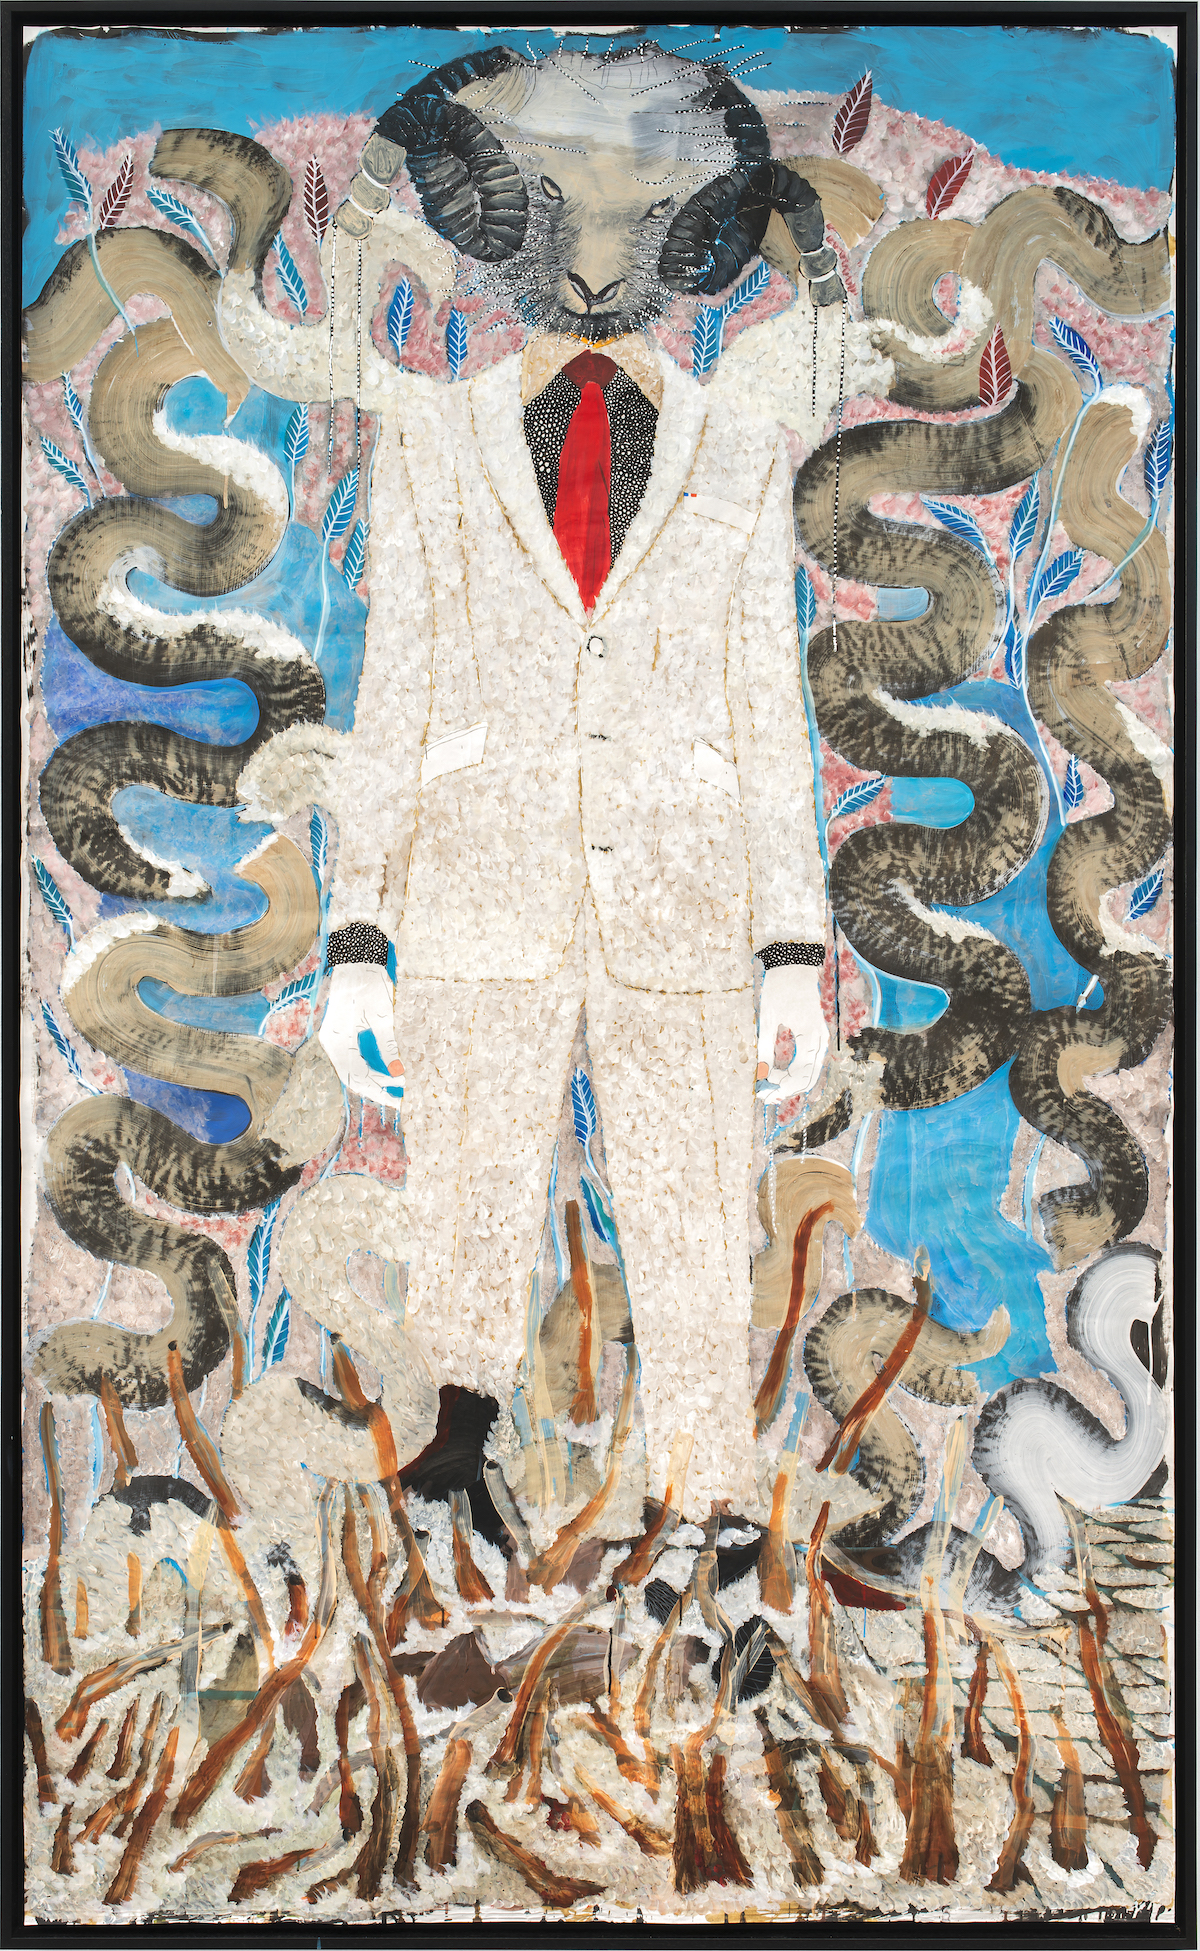 Omar Ba, Man and Superman I, 2021, Acrylic, pencil, oil, Indian ink and Bic pen on cardboard, 250 x 150 cm -98 3/7 x 59 1/16 in